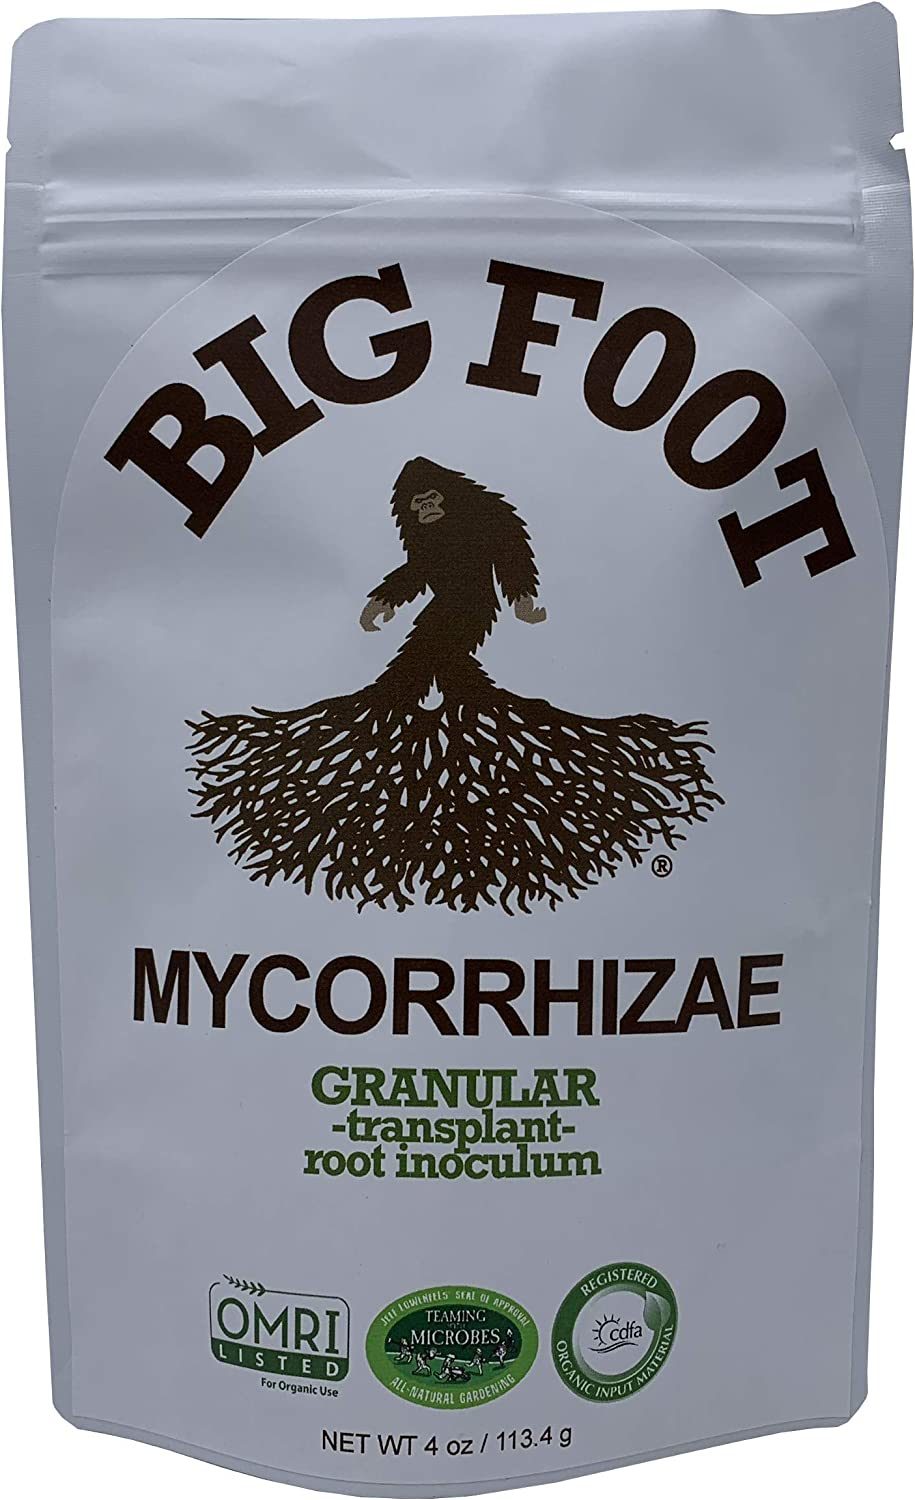 Big Foot Organic Mycorrhizal Granular Fungi Mycorrhizae Inoculant for Plant Root Growth Biochar, Worm Castings, Glomus Intaracides 4 oz